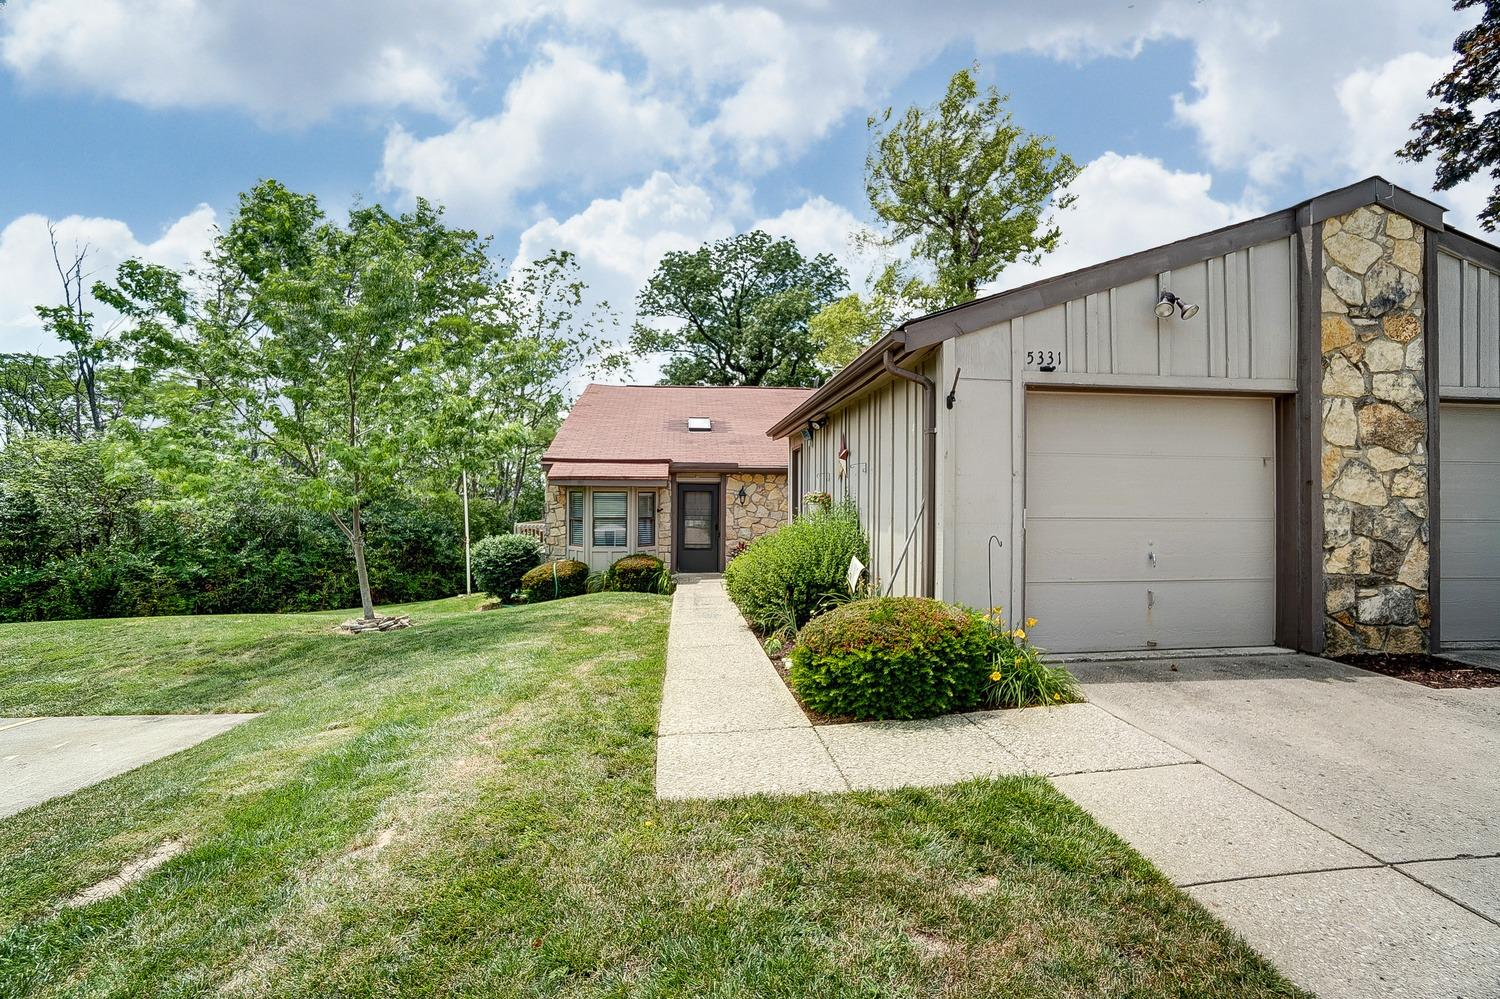 Property for sale at 5331 Pros Drive, West Chester,  Ohio 45069